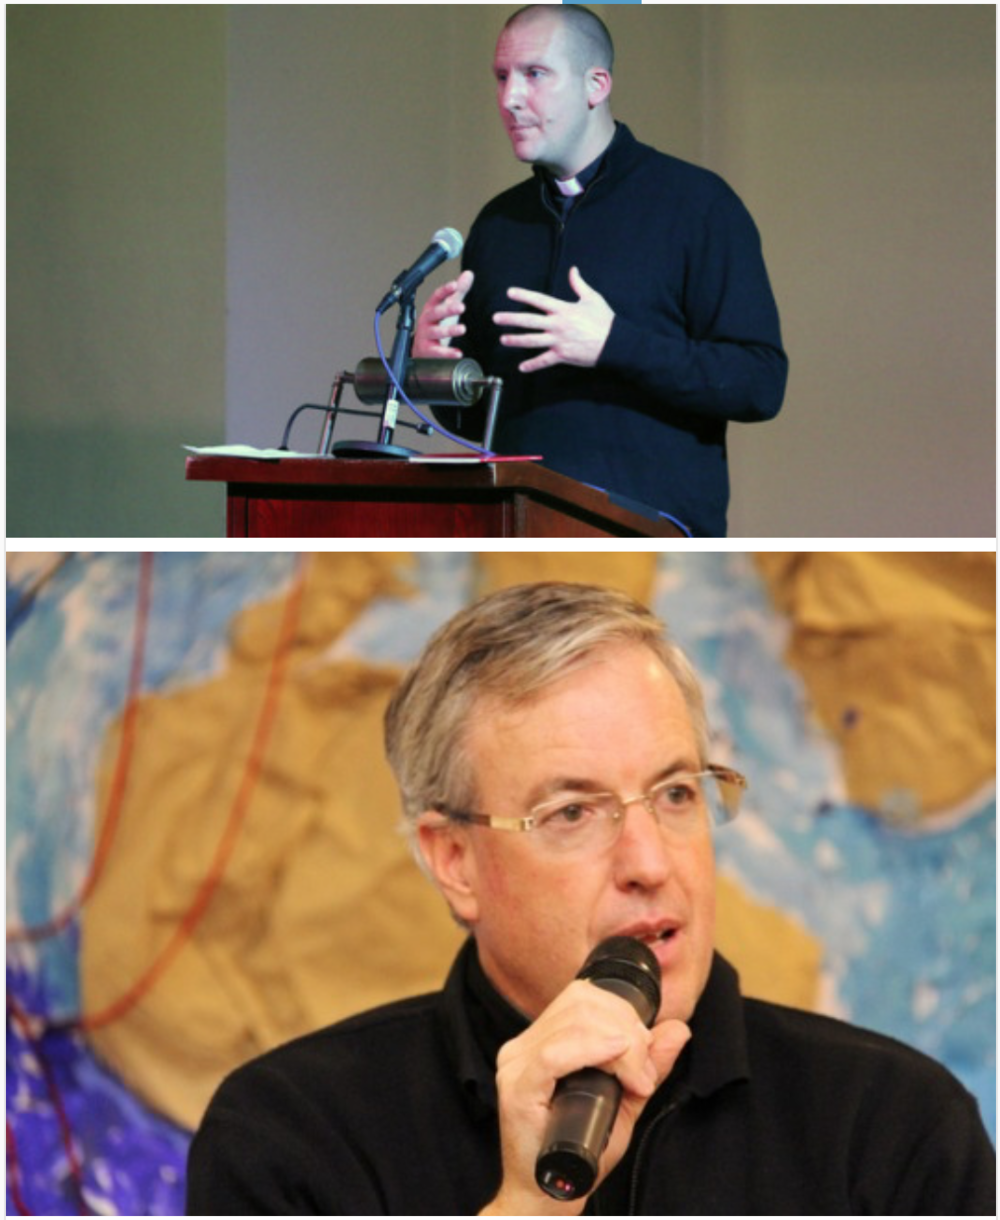 Top: Fr. Joe Freedy speaking at the 2017 Festival of Friendship Bottom: Fr. Vincent Nagle